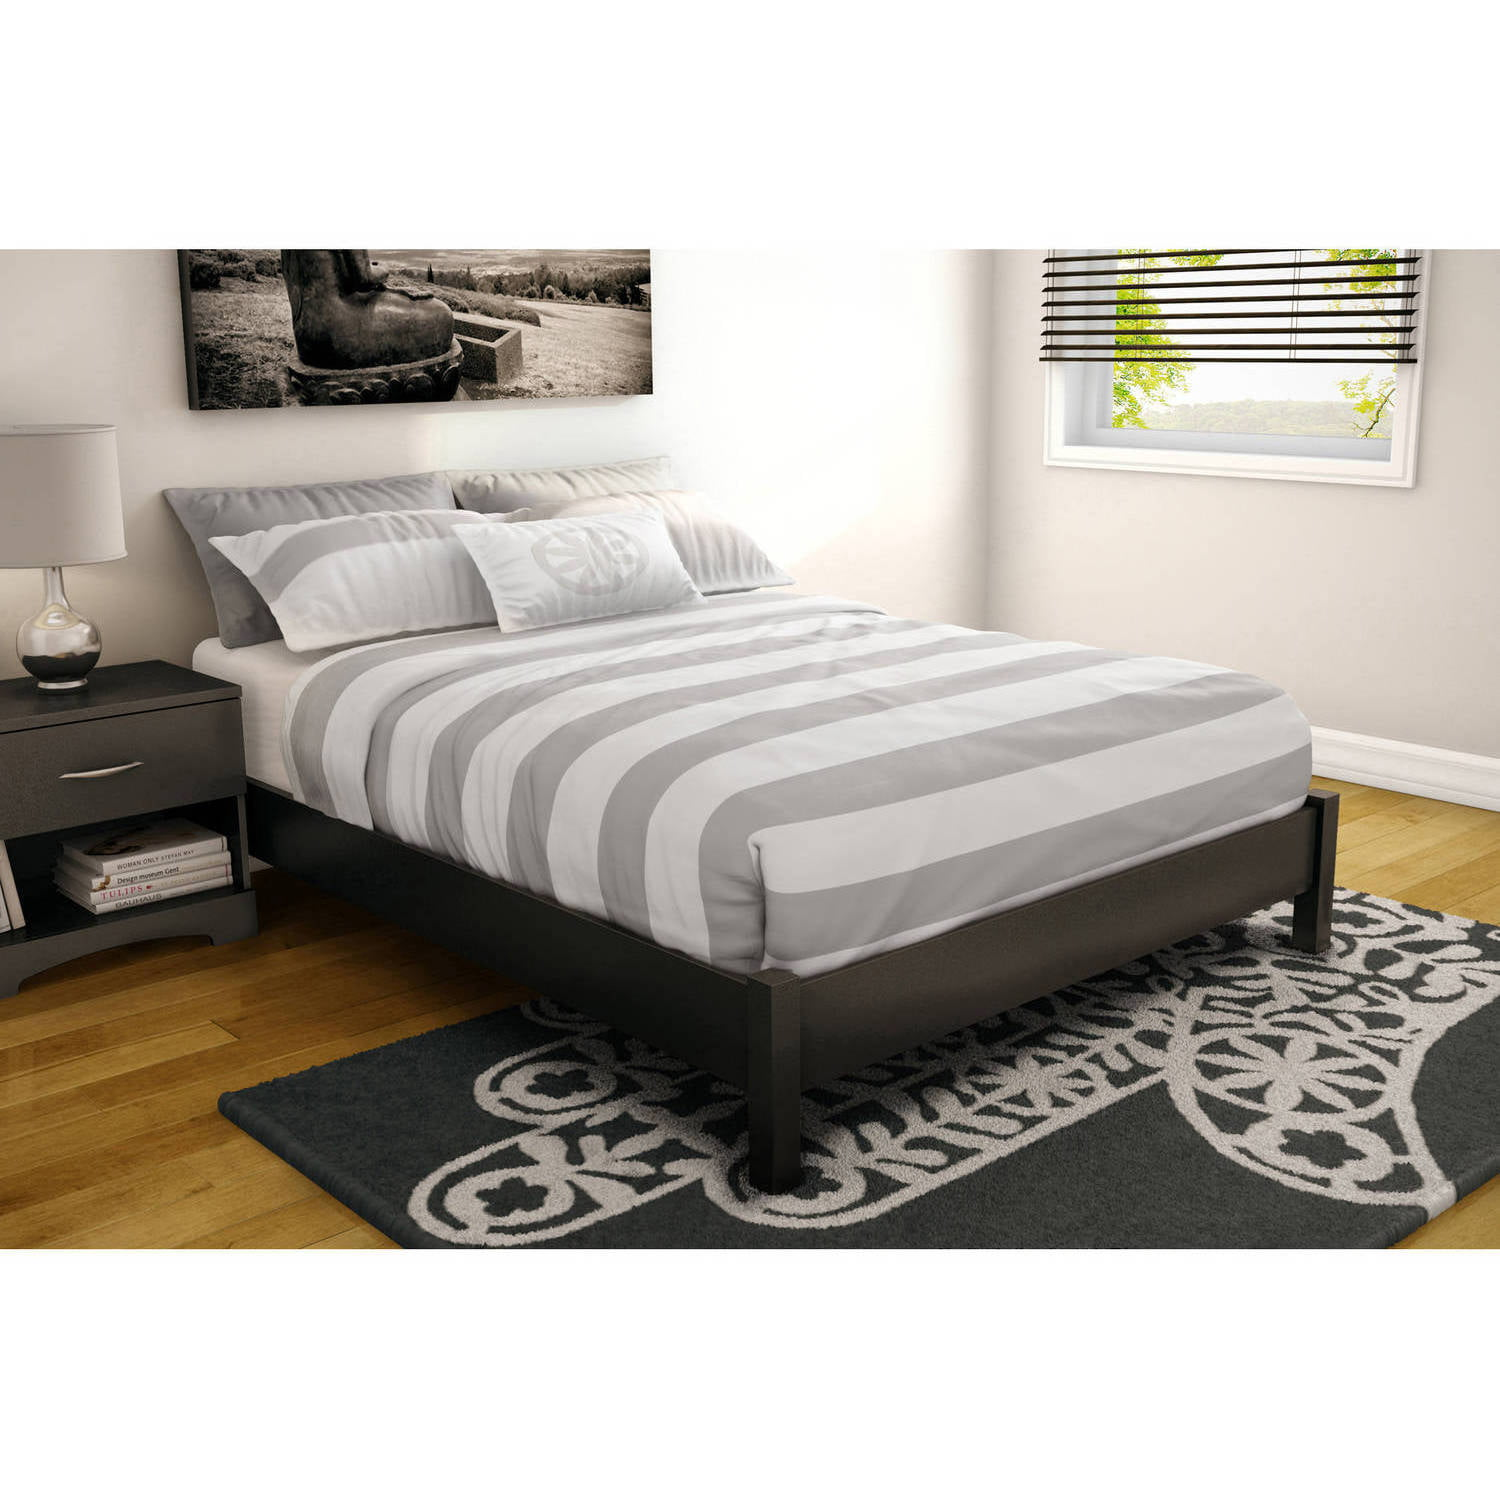 Pictures of platform beds - Premier Pia Metal Platform Bed Frame Queen With Bonus Base Wooden Slat System Walmart Com